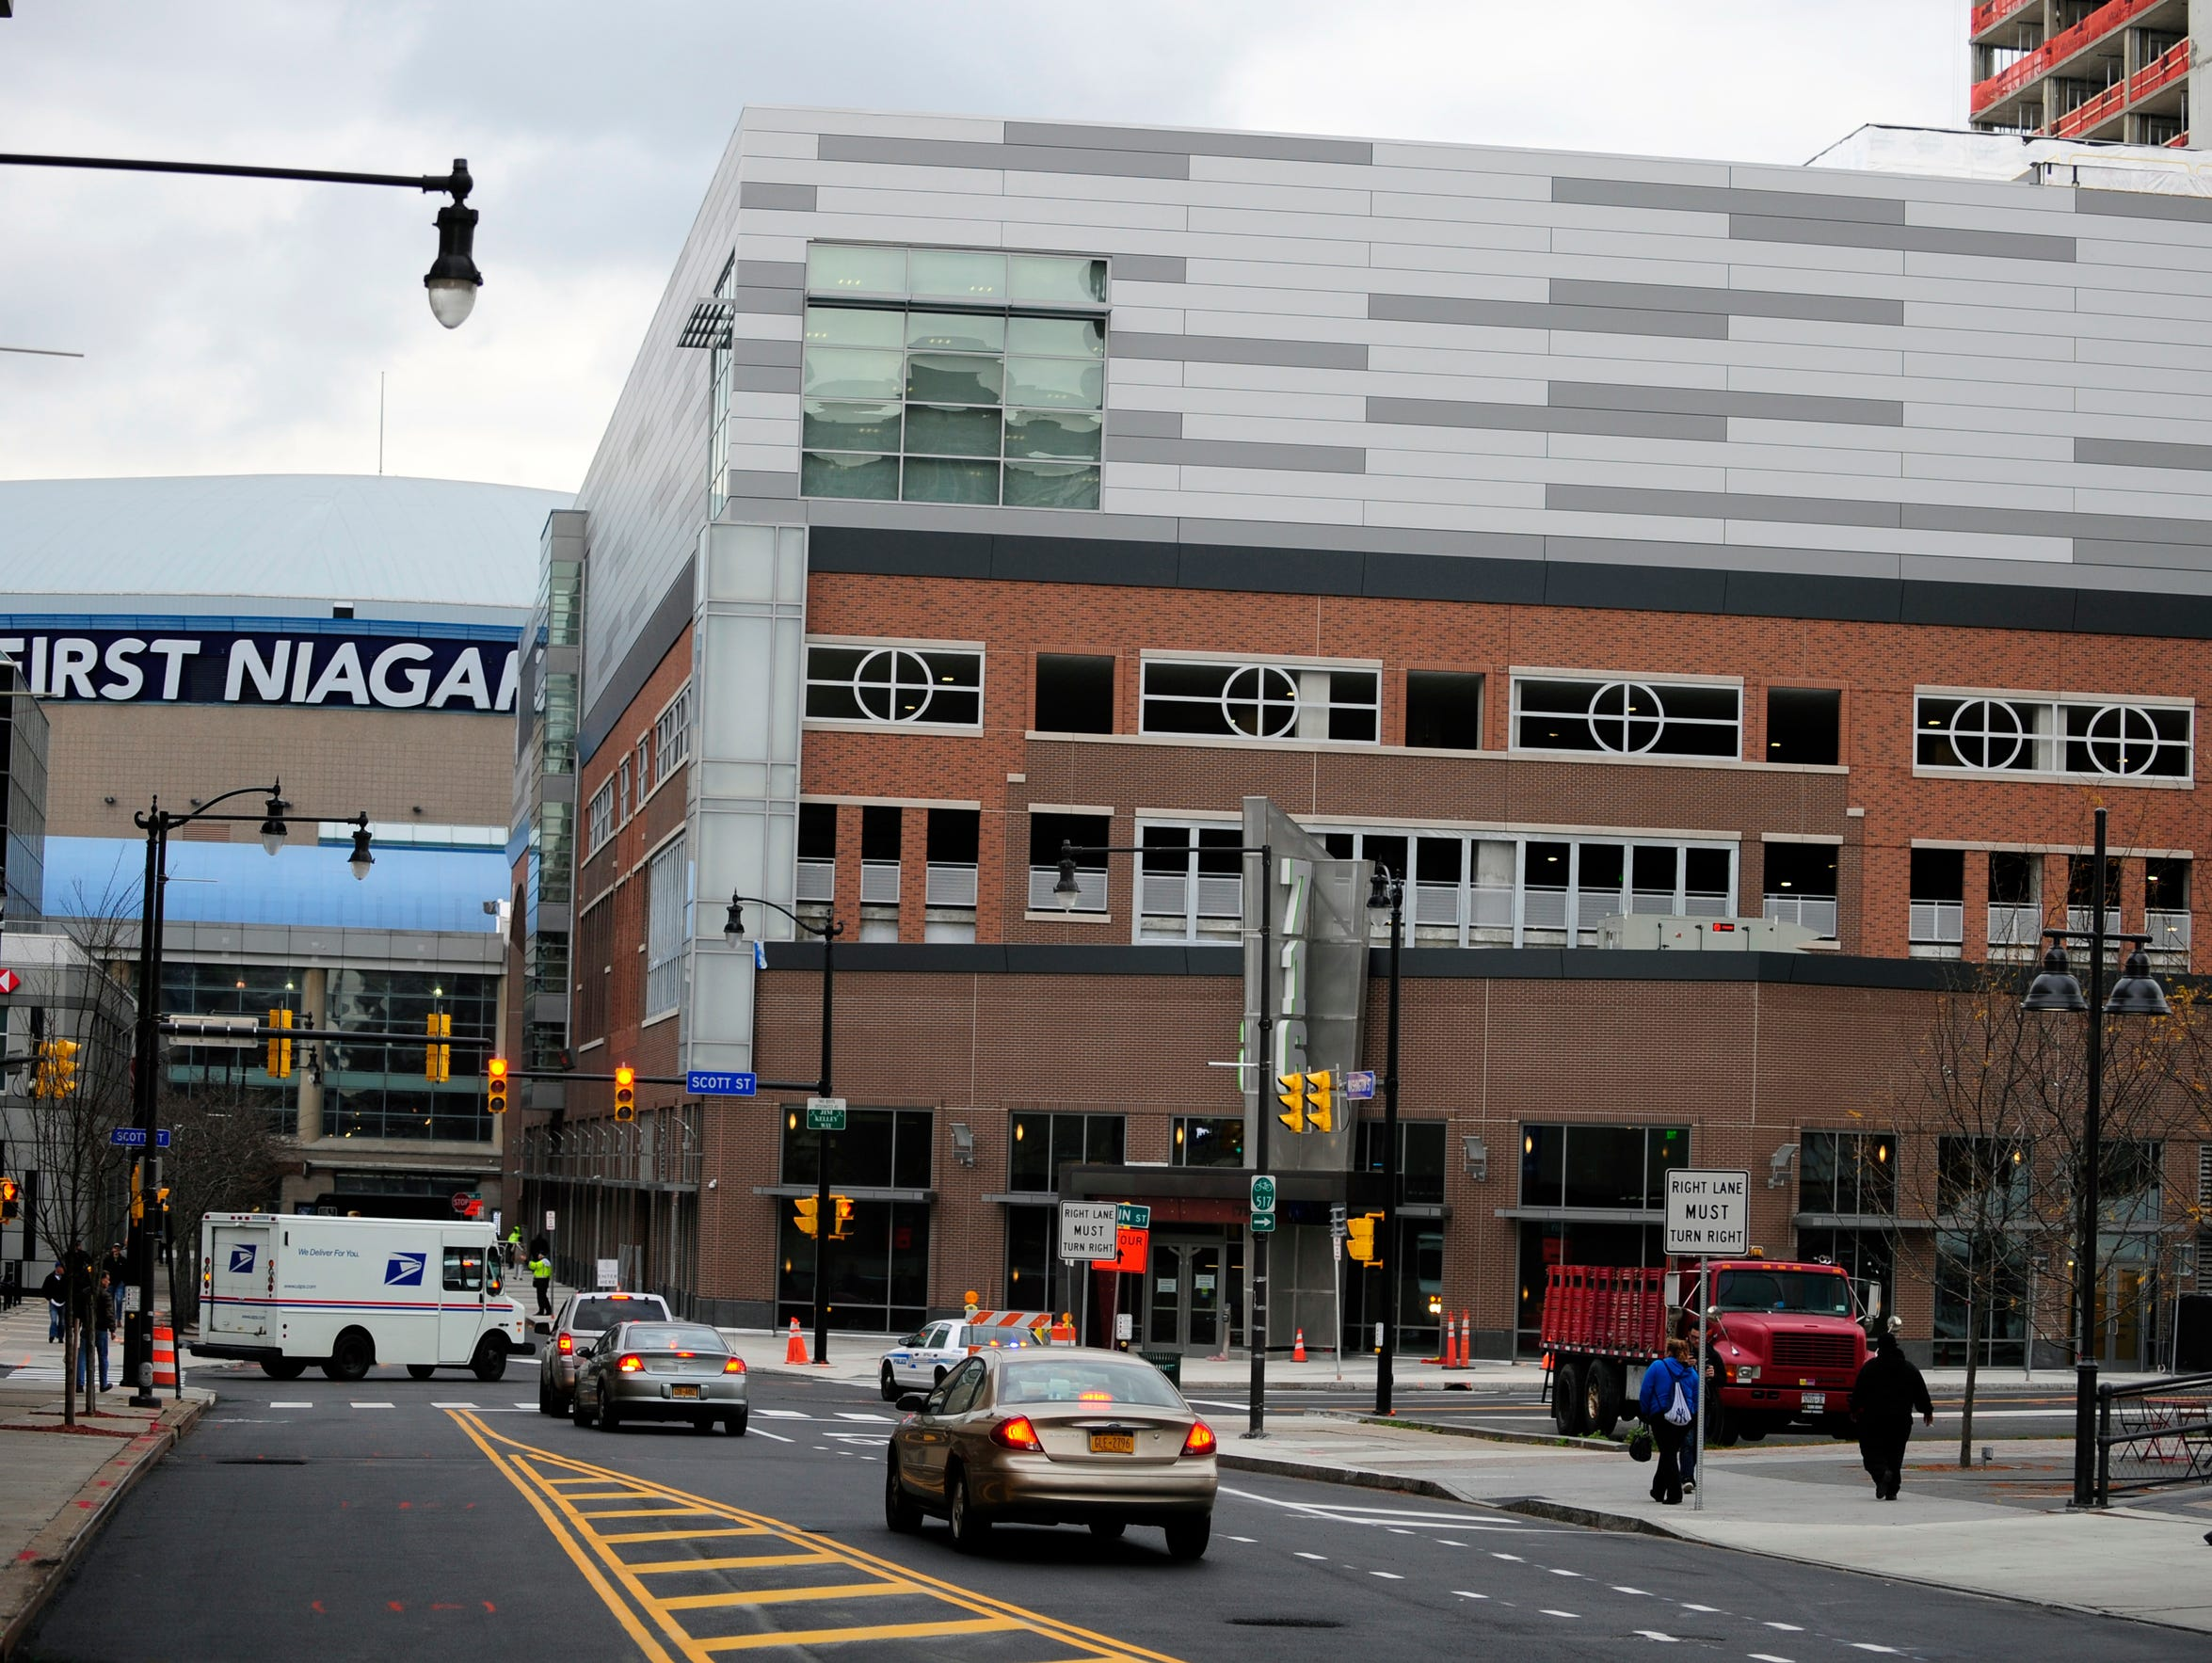 Traffic starts to flow in front of HarborCenter, which